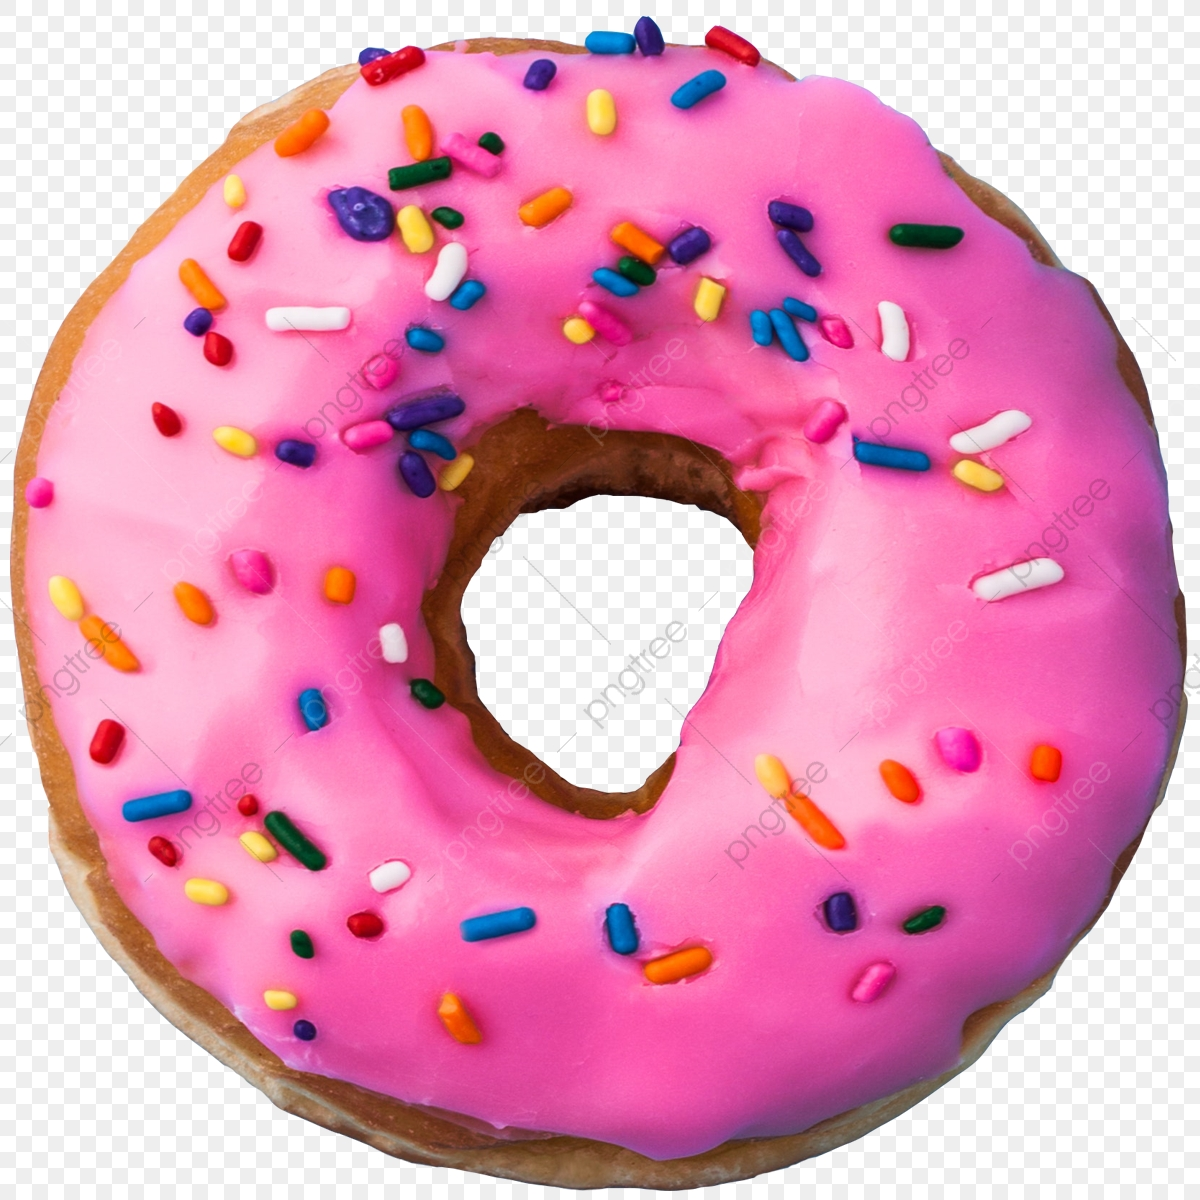 Pink Donut Vector, Png, Donut, Donuts PNG Transparent Clipart Image.